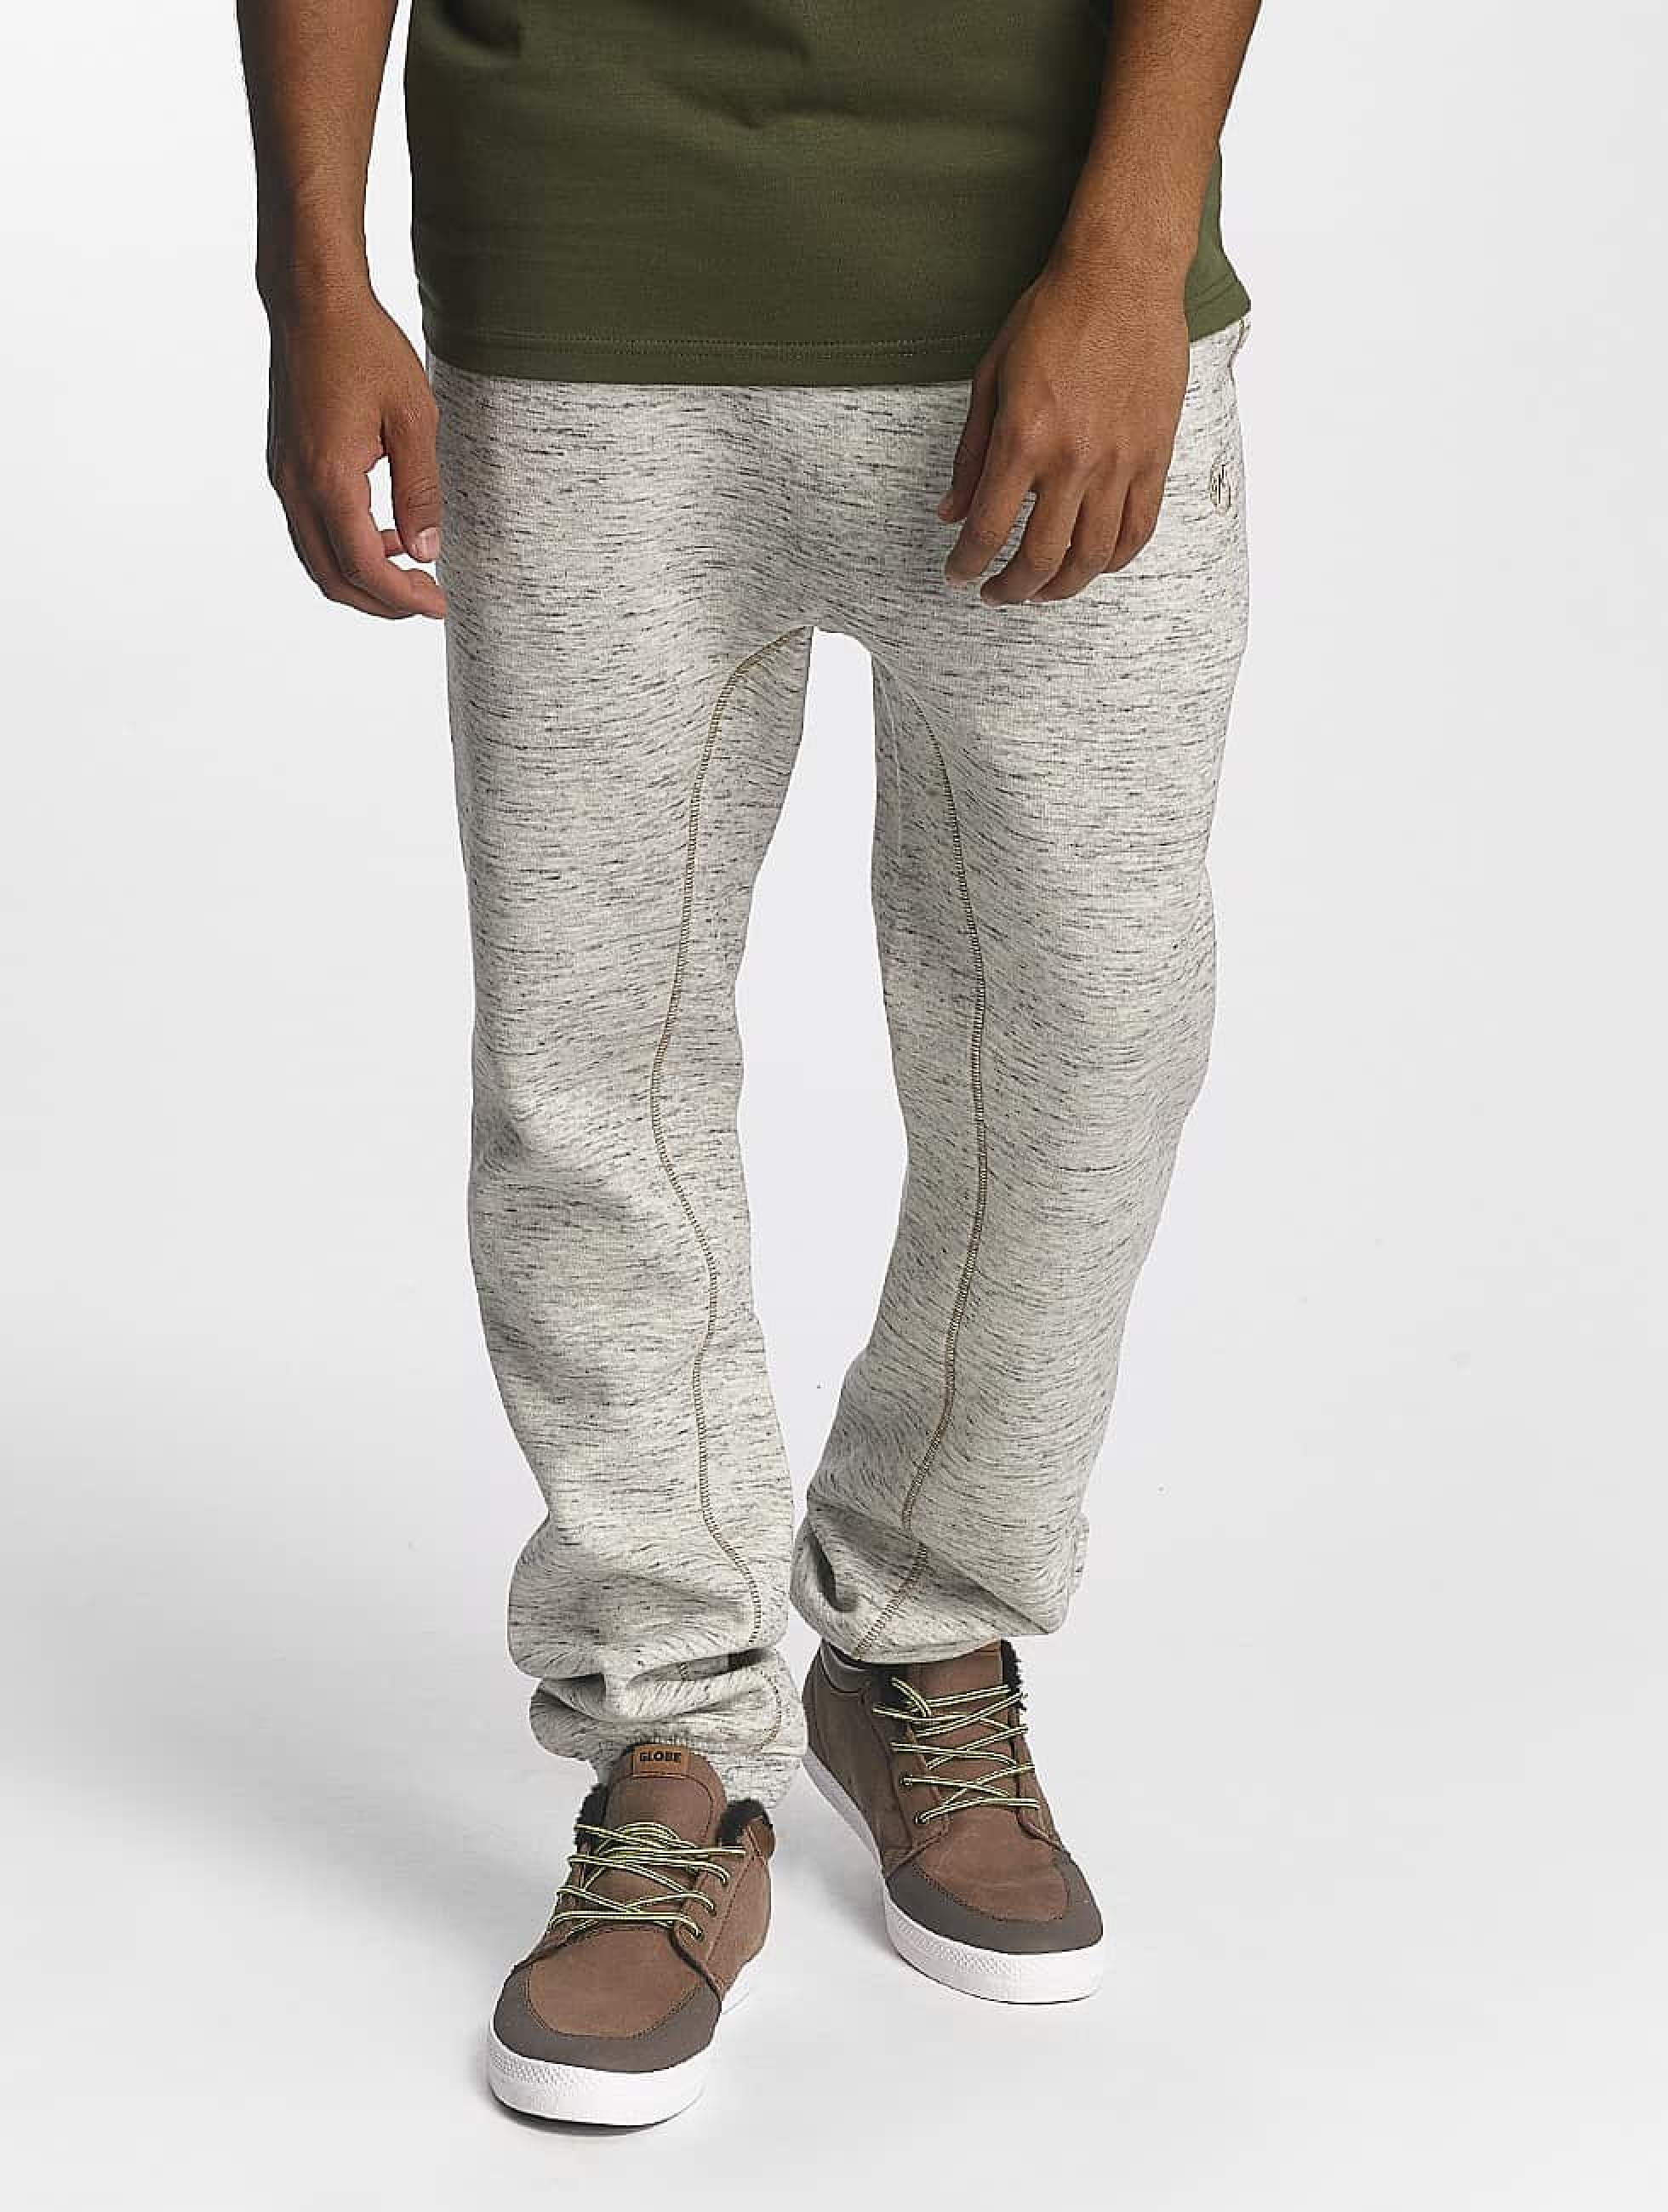 Just Rhyse / Sweat Pant Clover Pass in grey 3XL